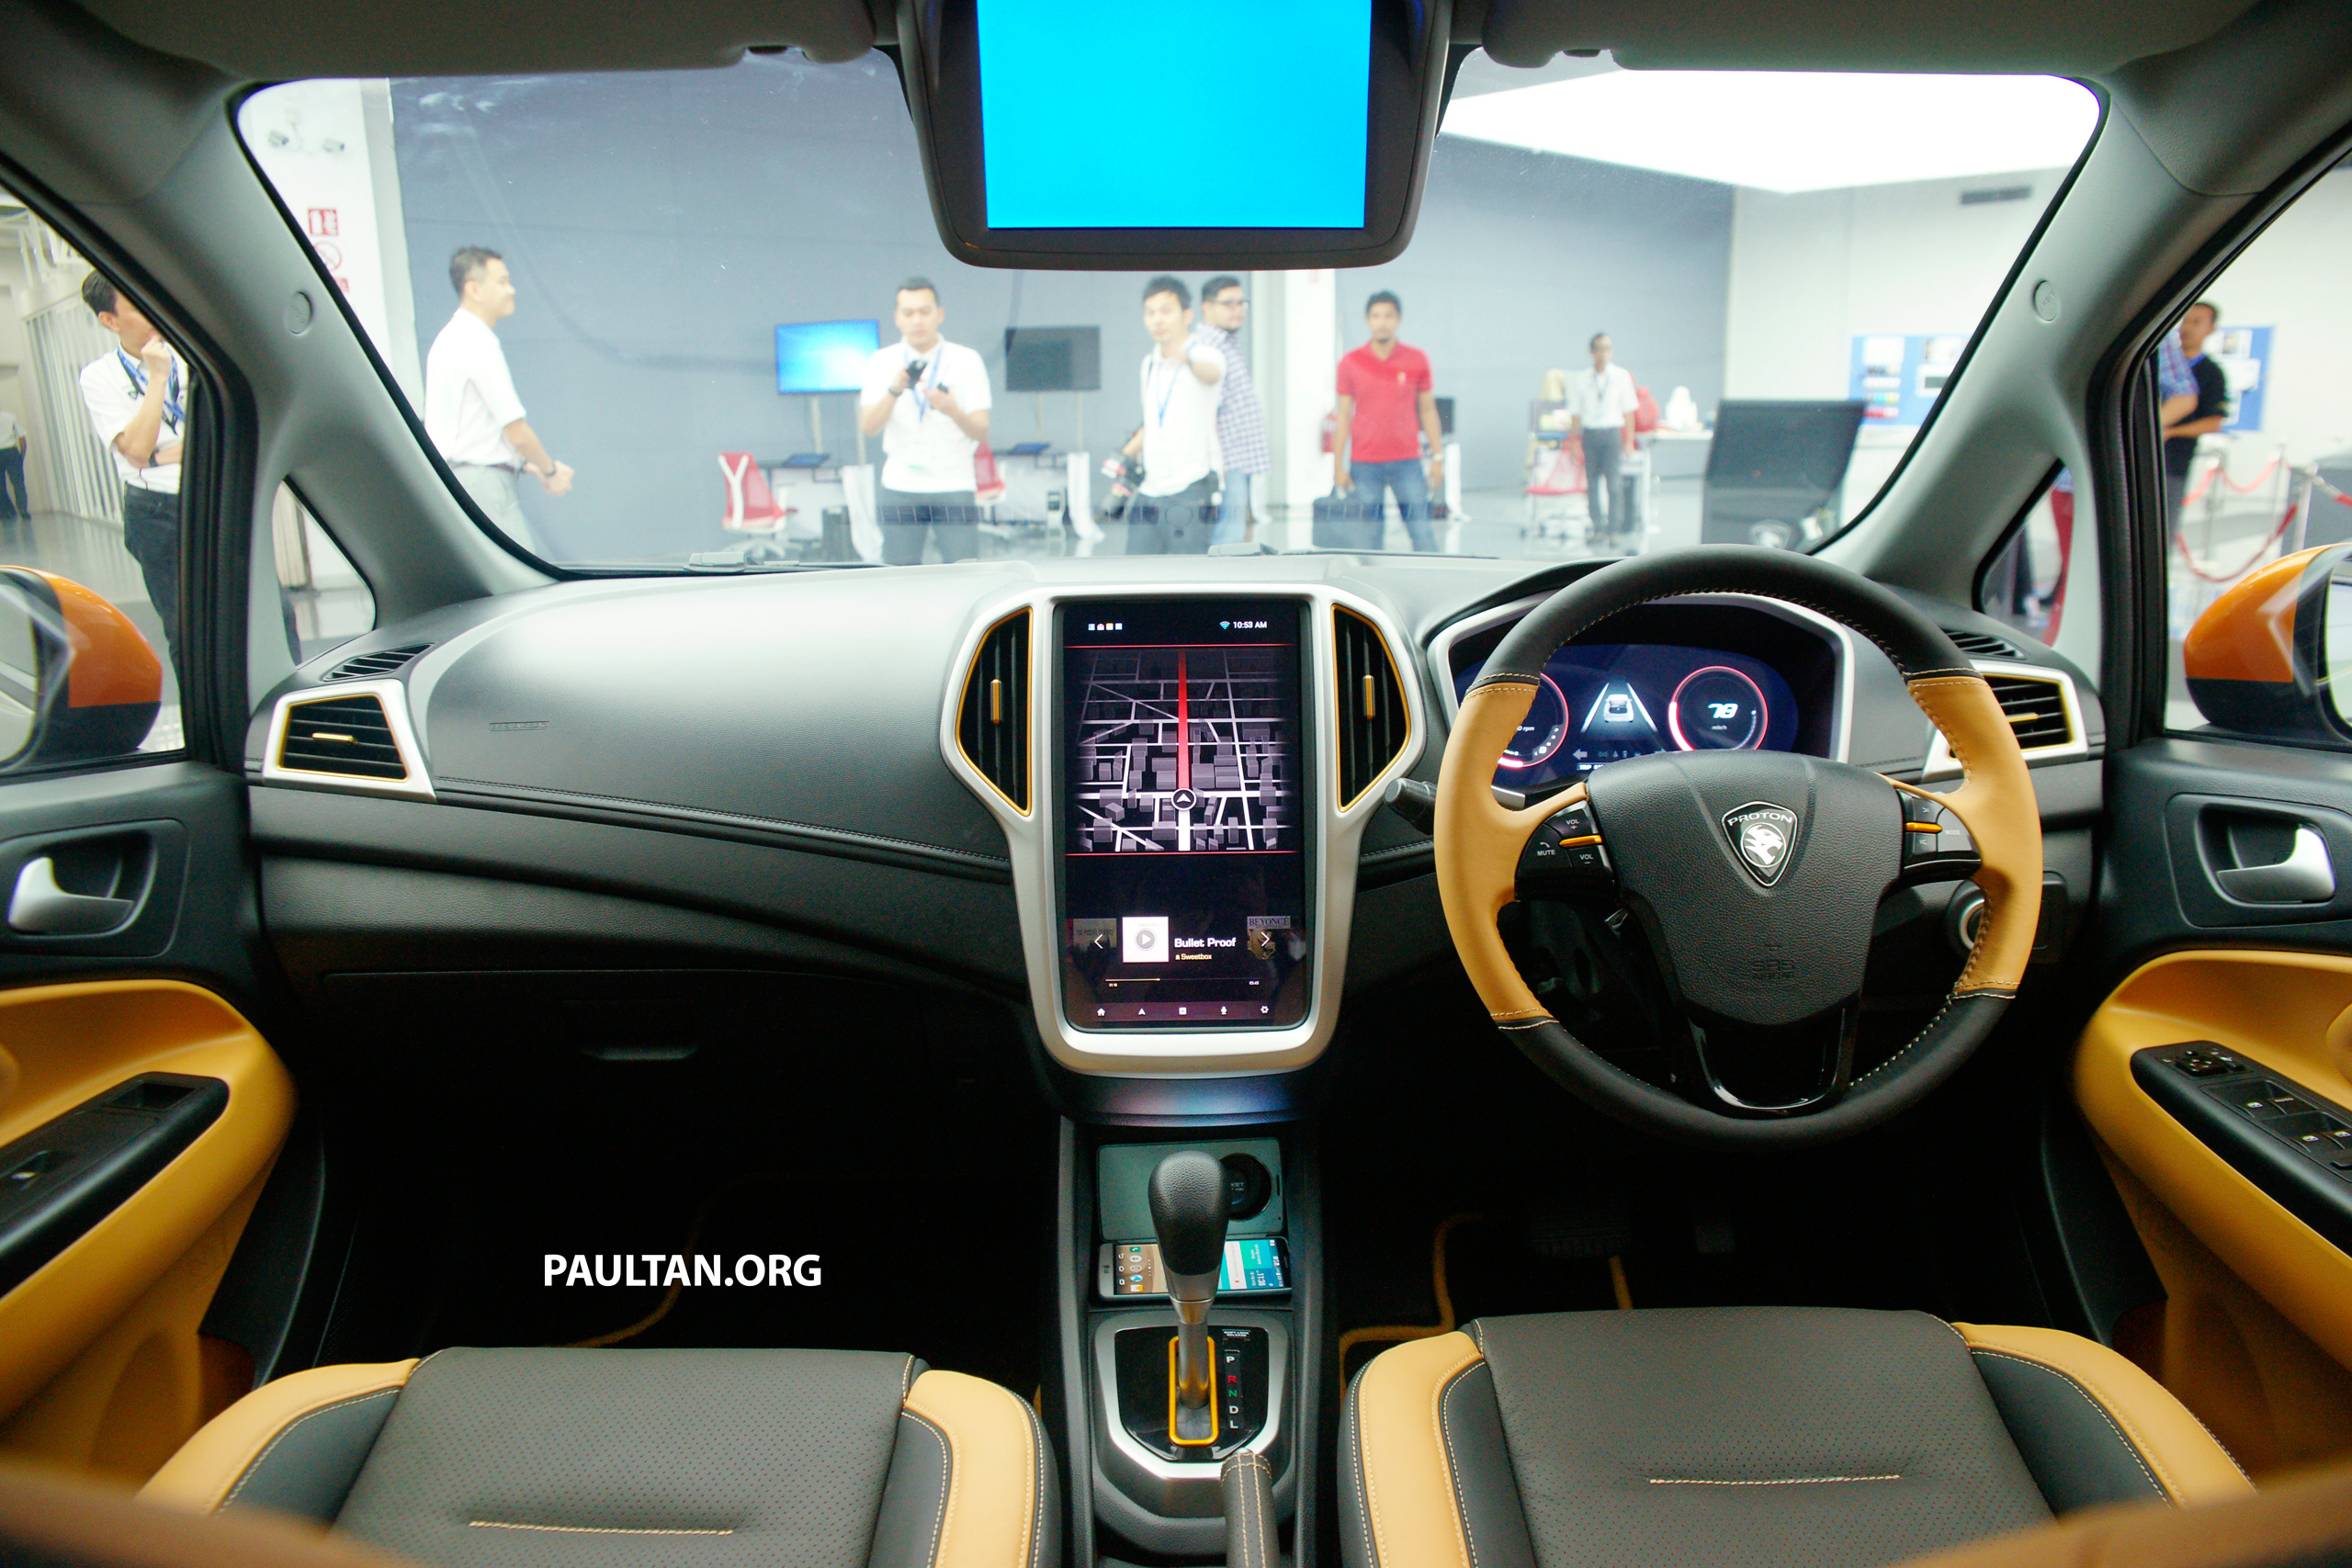 Proton perusahaan otomobil nasional malaysia s 1st national car company est 1983 page 198 skyscrapercity